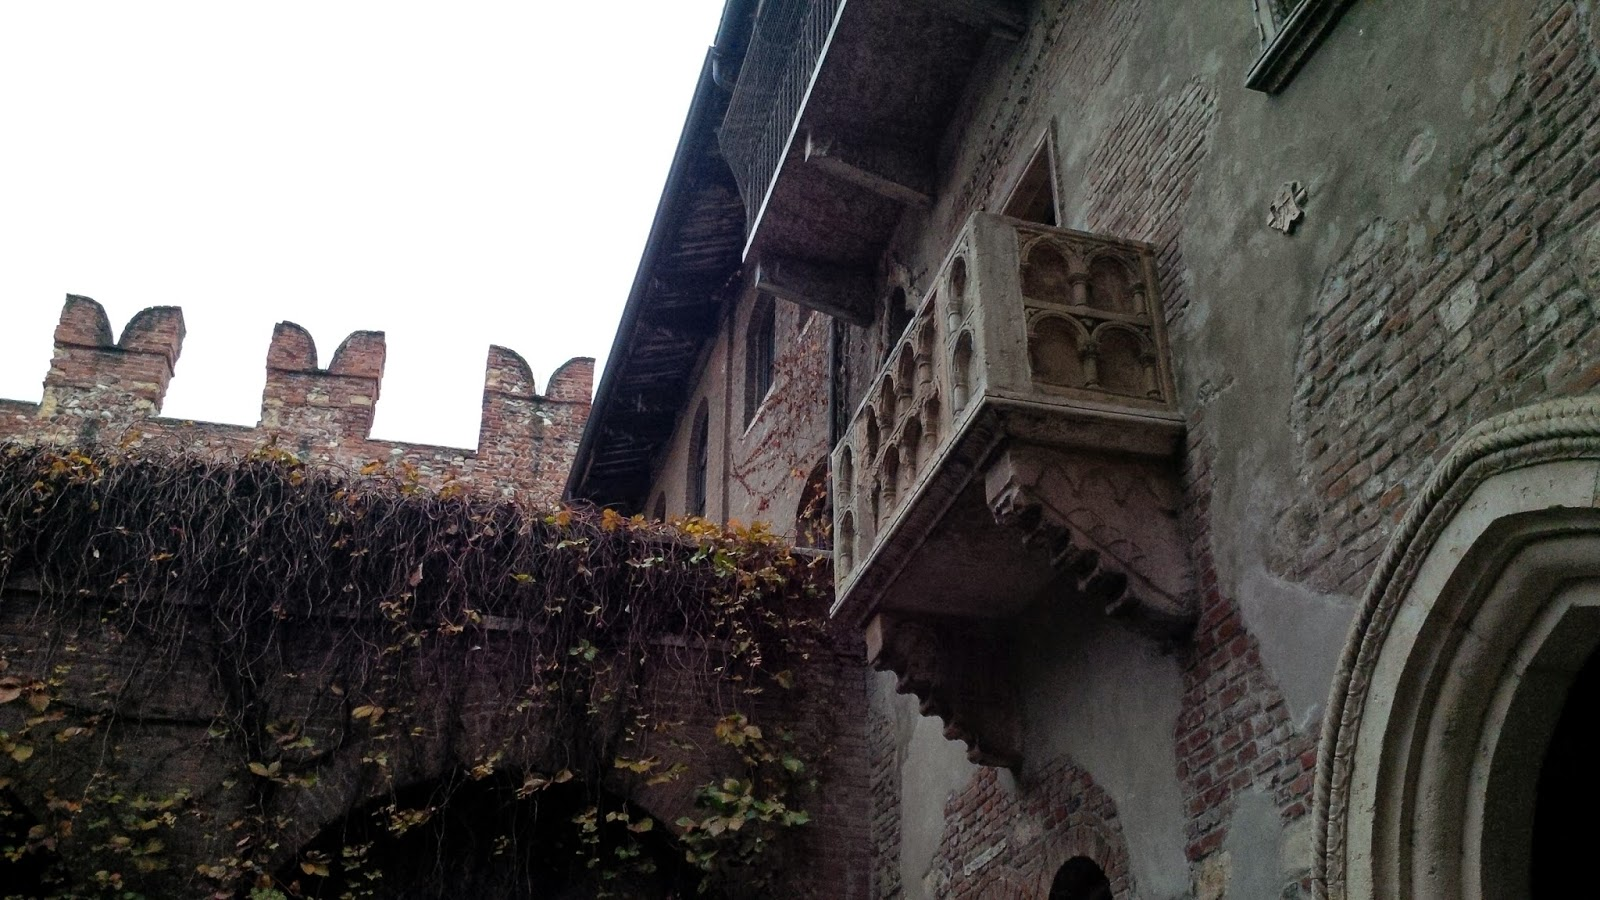 Juliet's balcony in Juliet's House in Verona